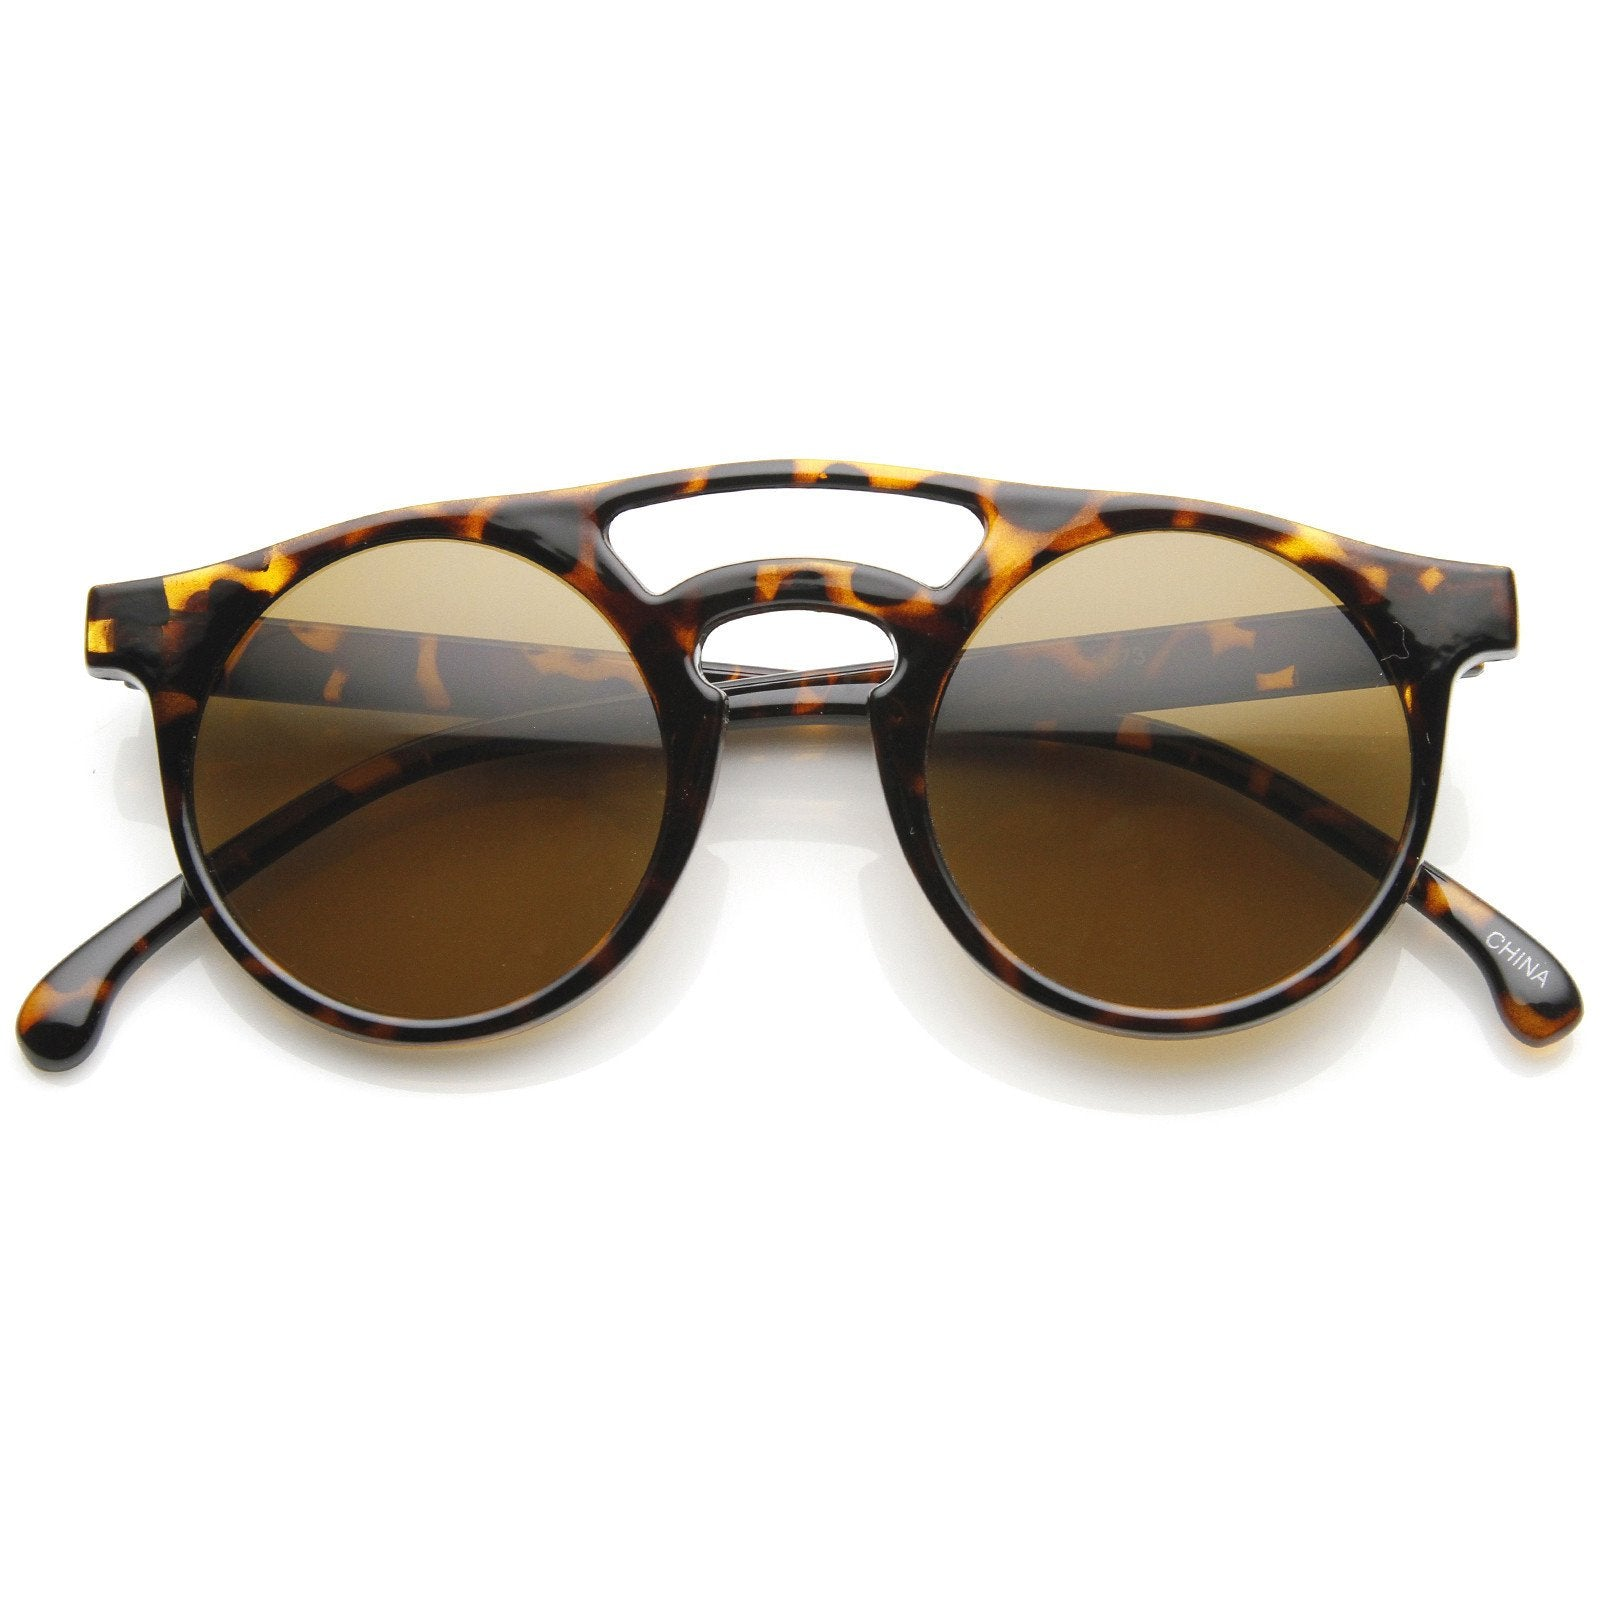 d0fb4e376d9 Retro Hipster Indie Sunglasses Tagged